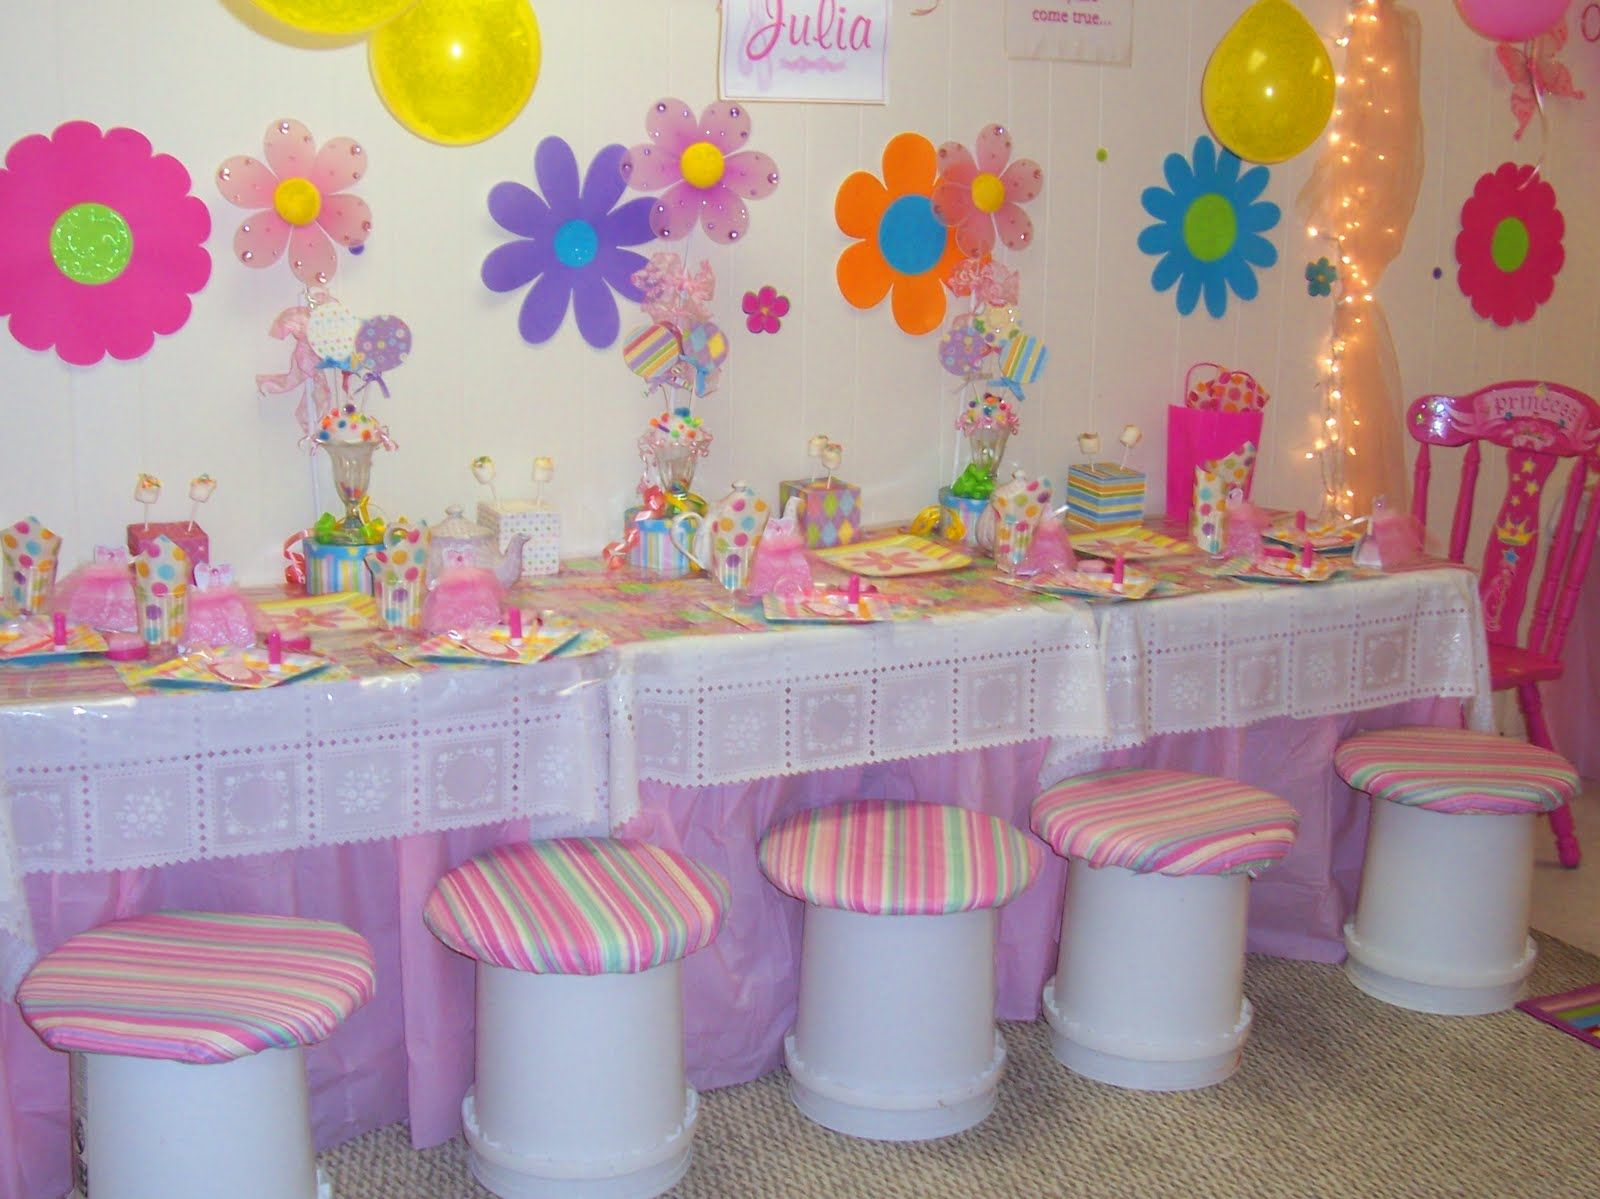 Glow In The Dark Party Pittsburgh Girls Birthday Party S Cumpleanos Infantiles Decoracion Decoracion Fiesta Cumpleanos Fiesta De Cumpleanos Infantil